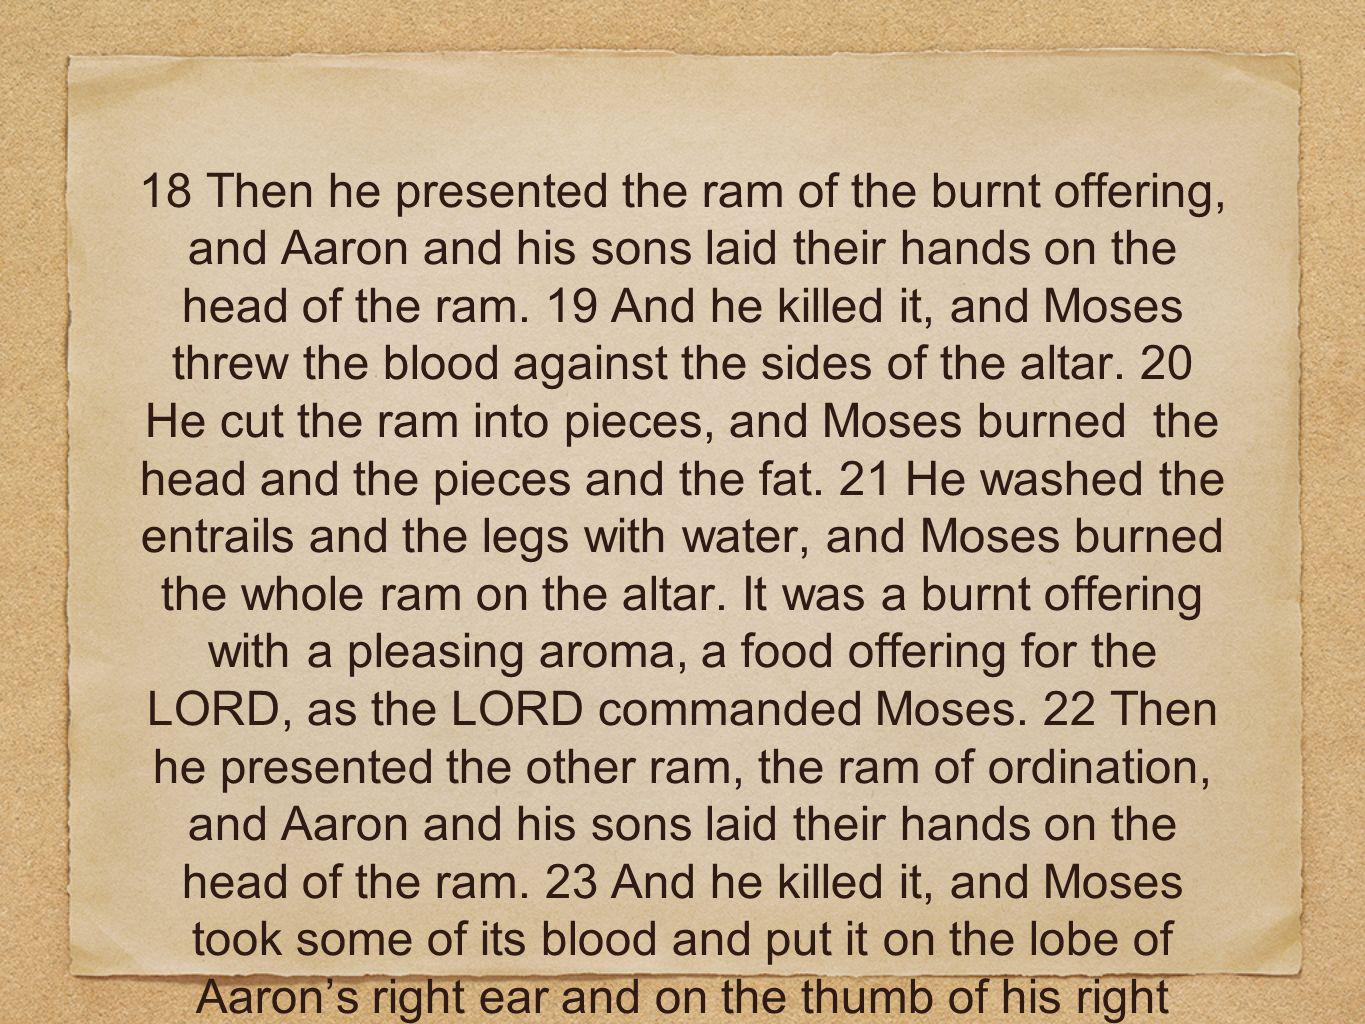 18 Then he presented the ram of the burnt offering, and Aaron and his sons laid their hands on the head of the ram.